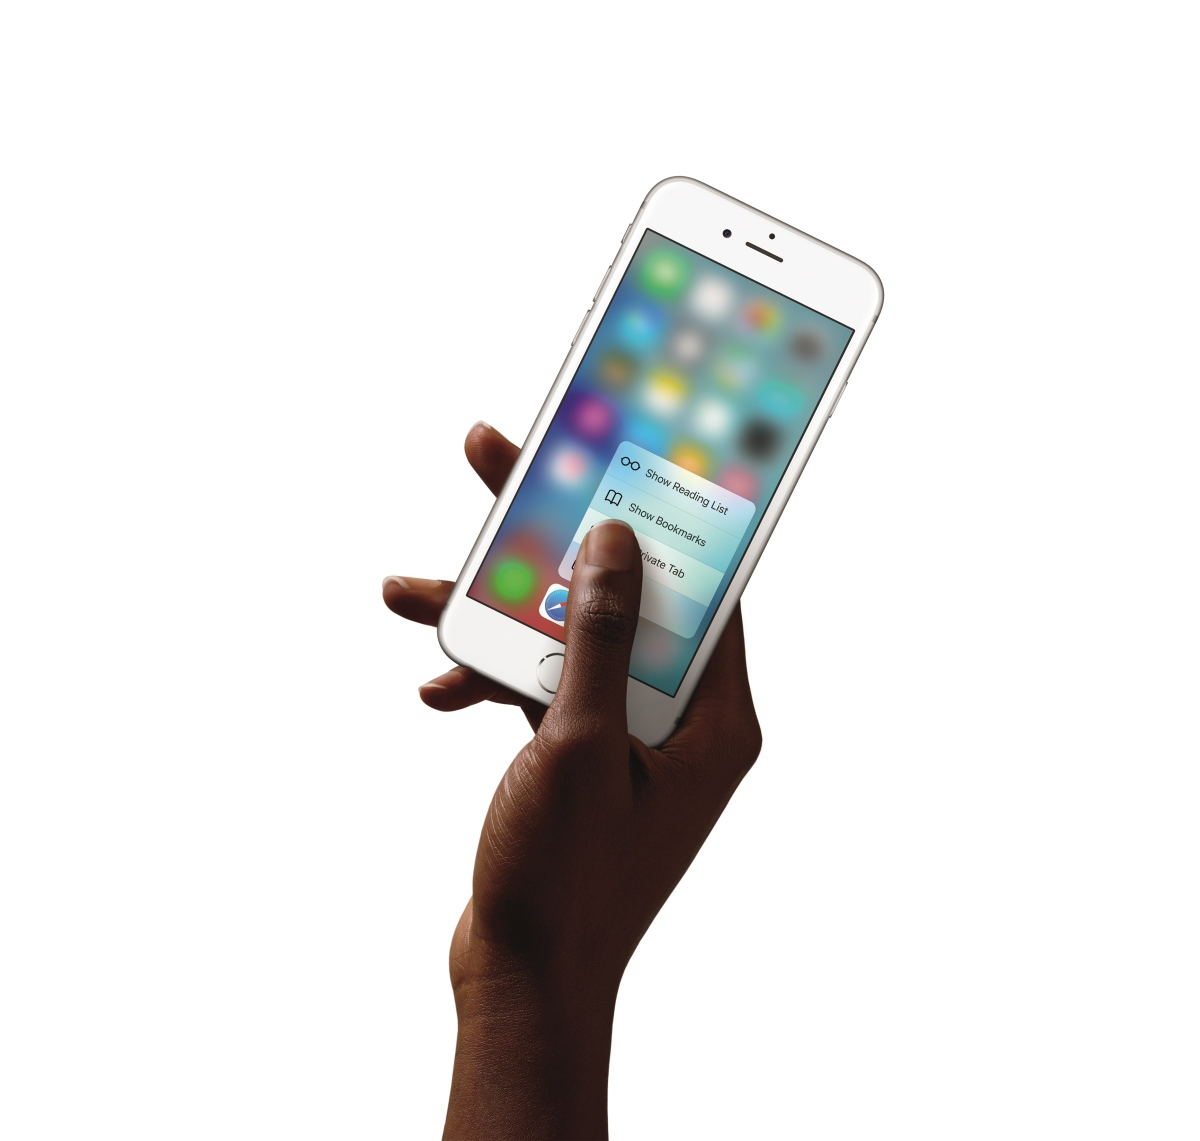 iPhone 6s Black Friday deals